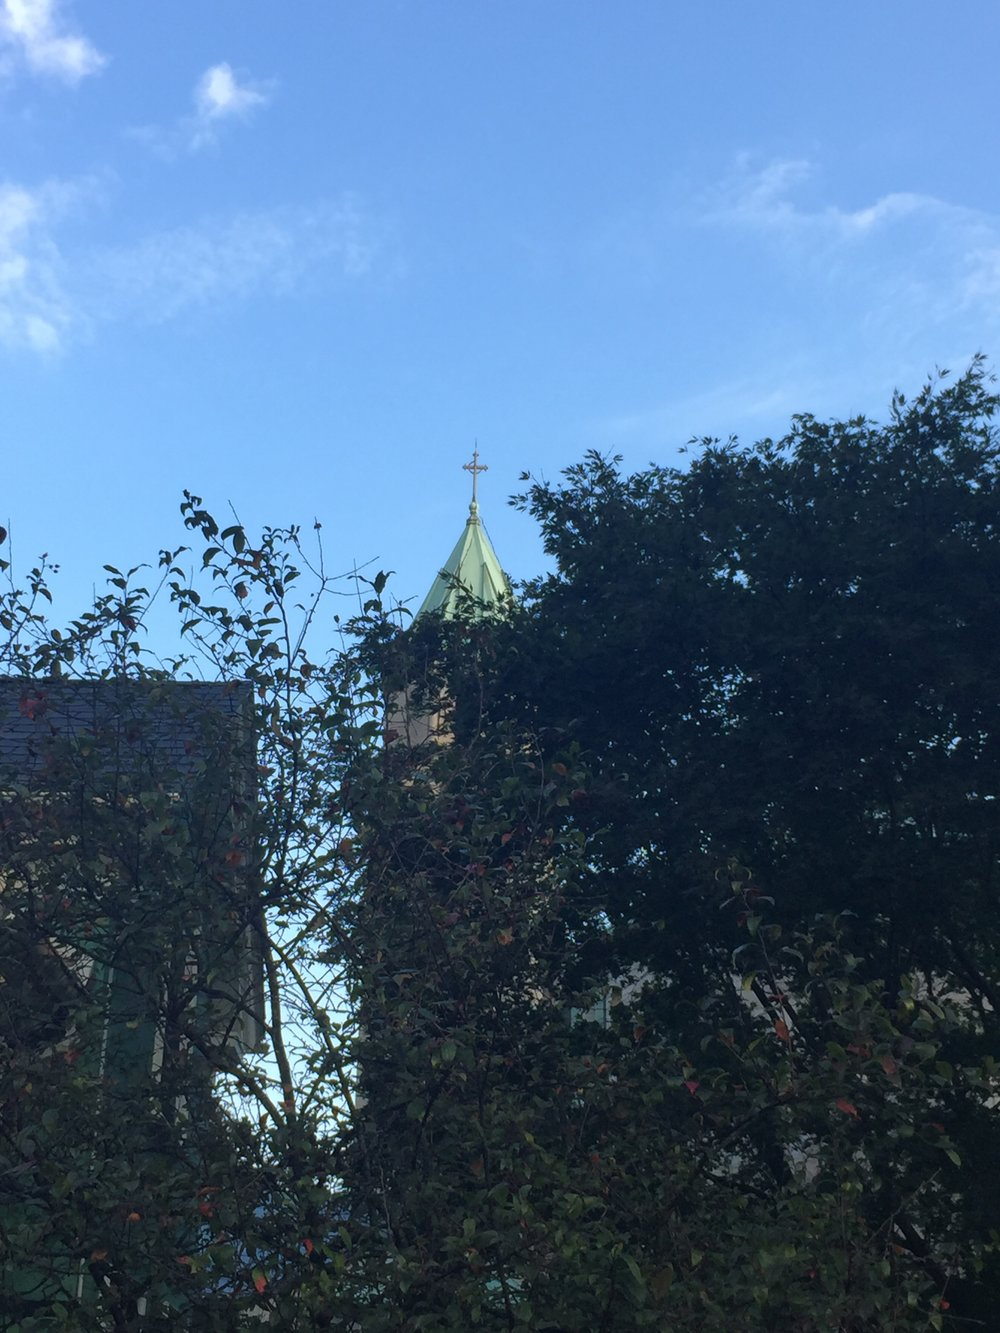 The chapel spire from the garden